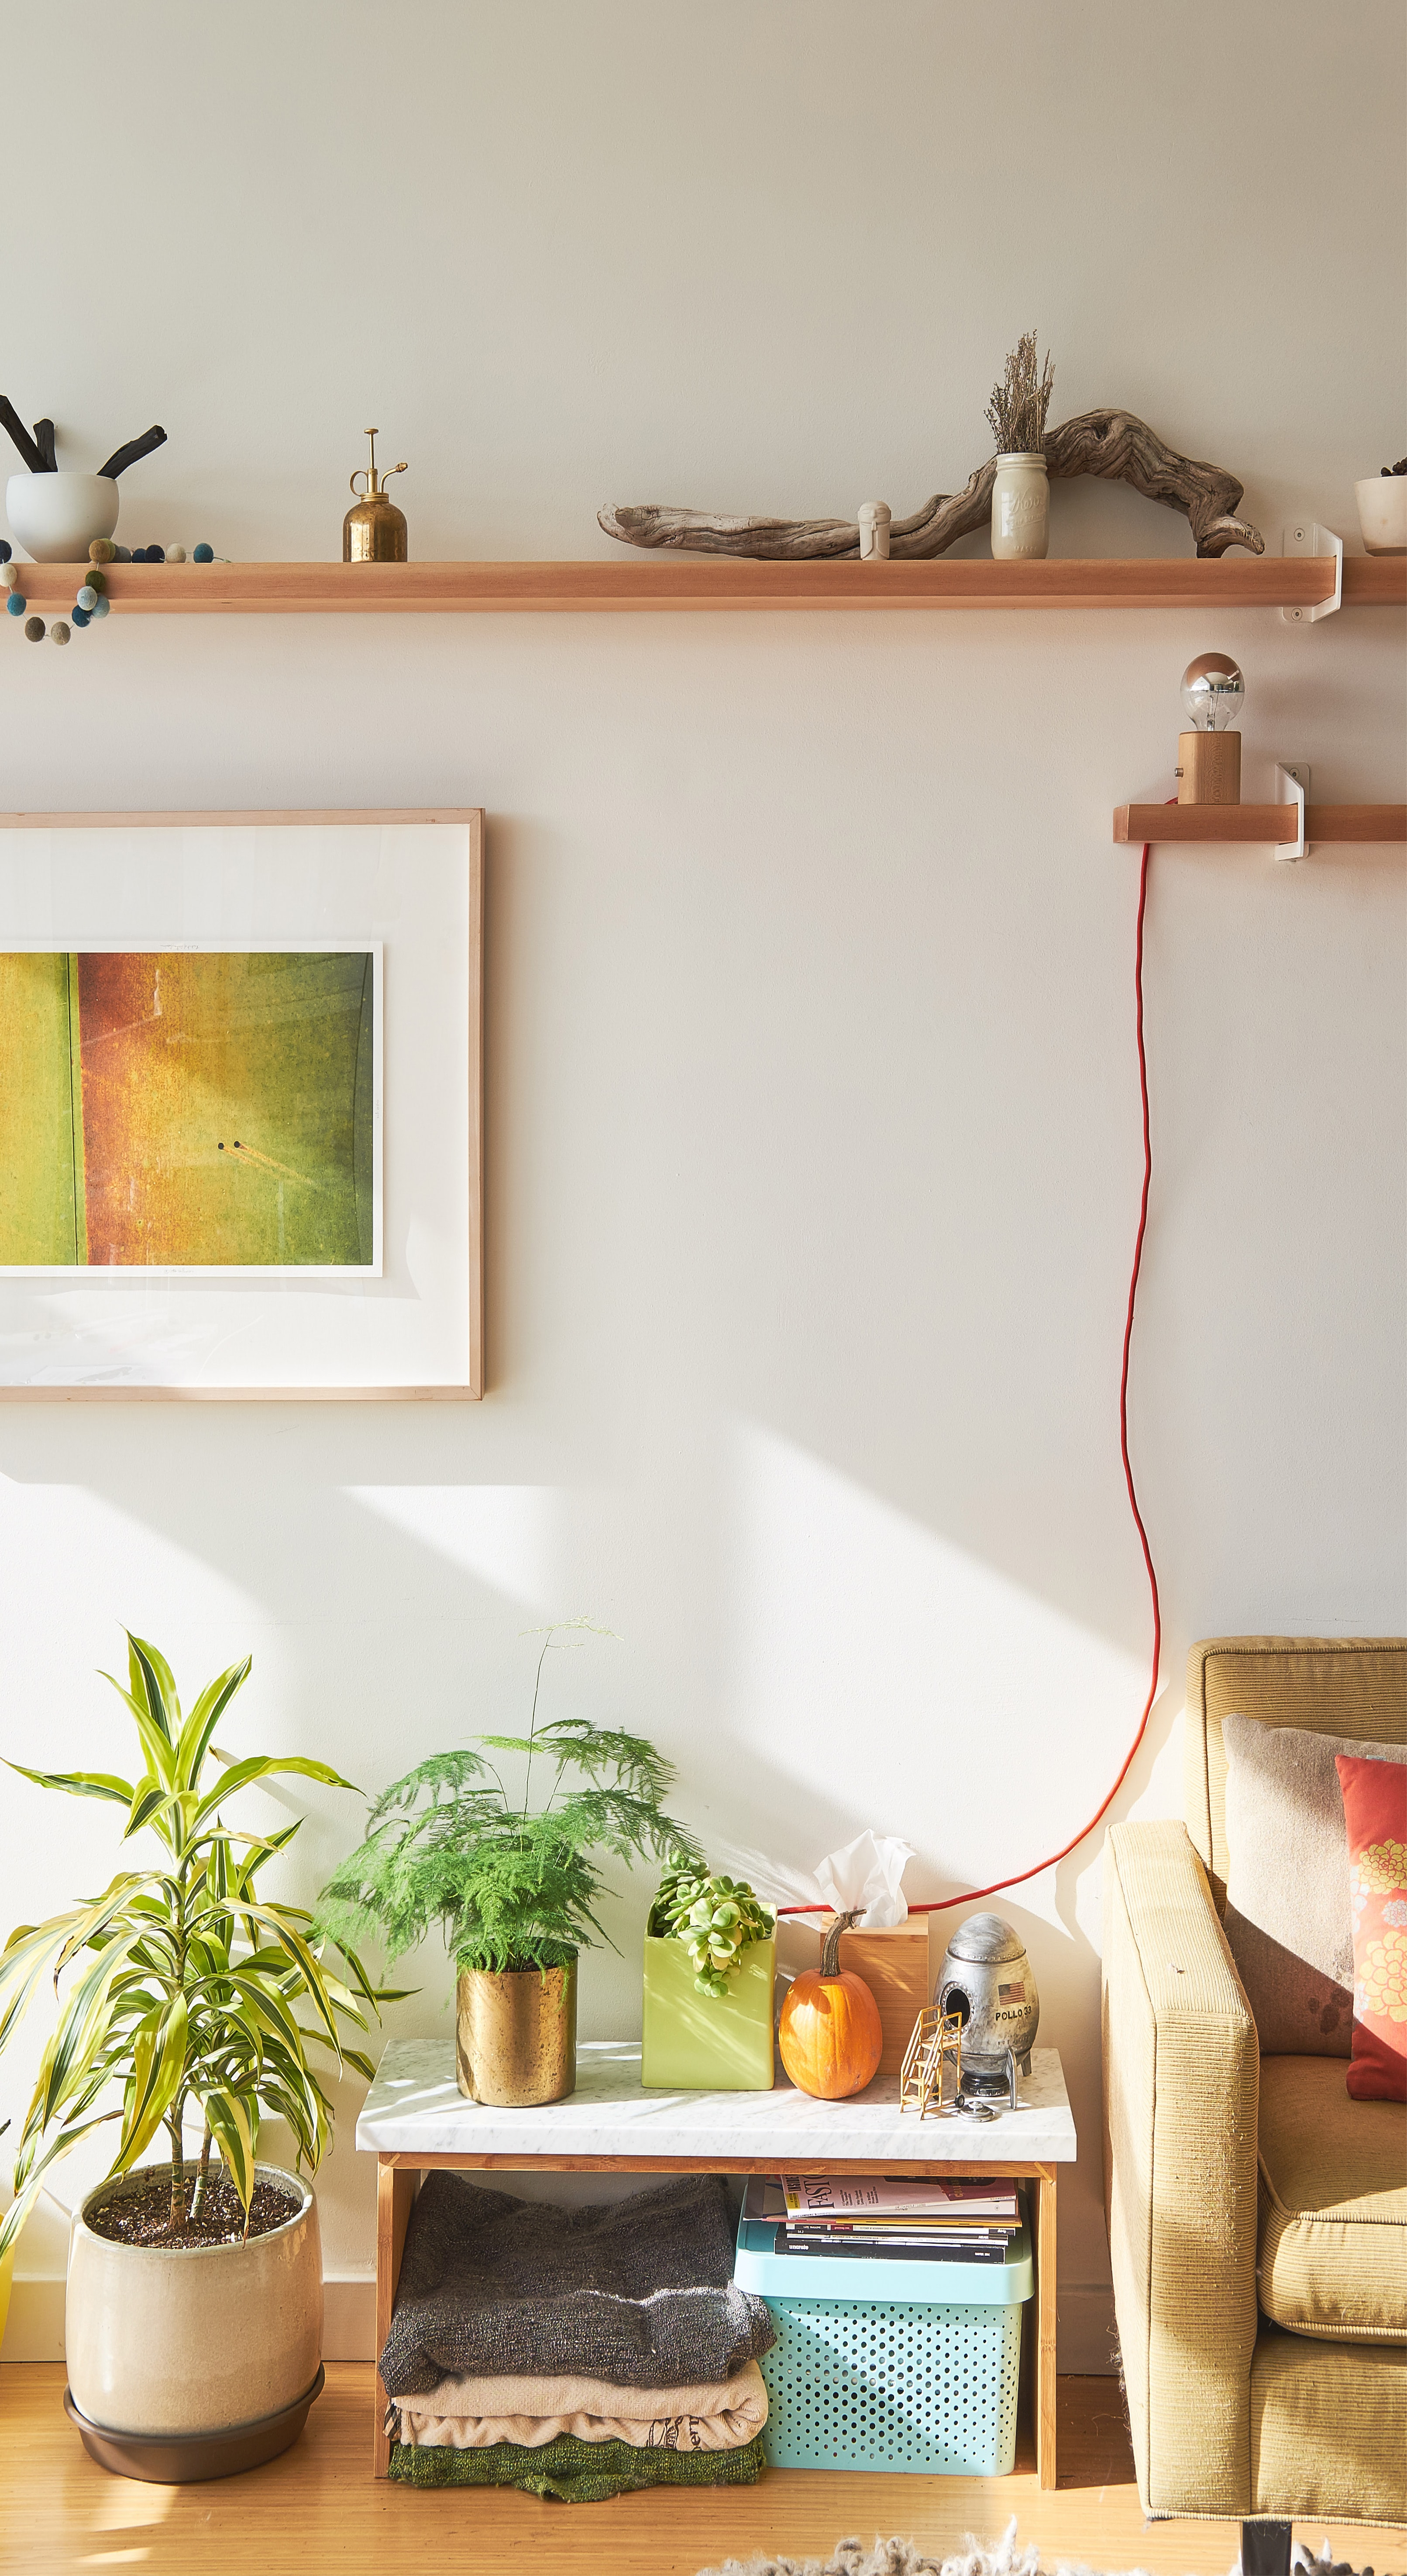 Interior decor white wall with wooden shelves, wall painting, plants, cable and chair in home